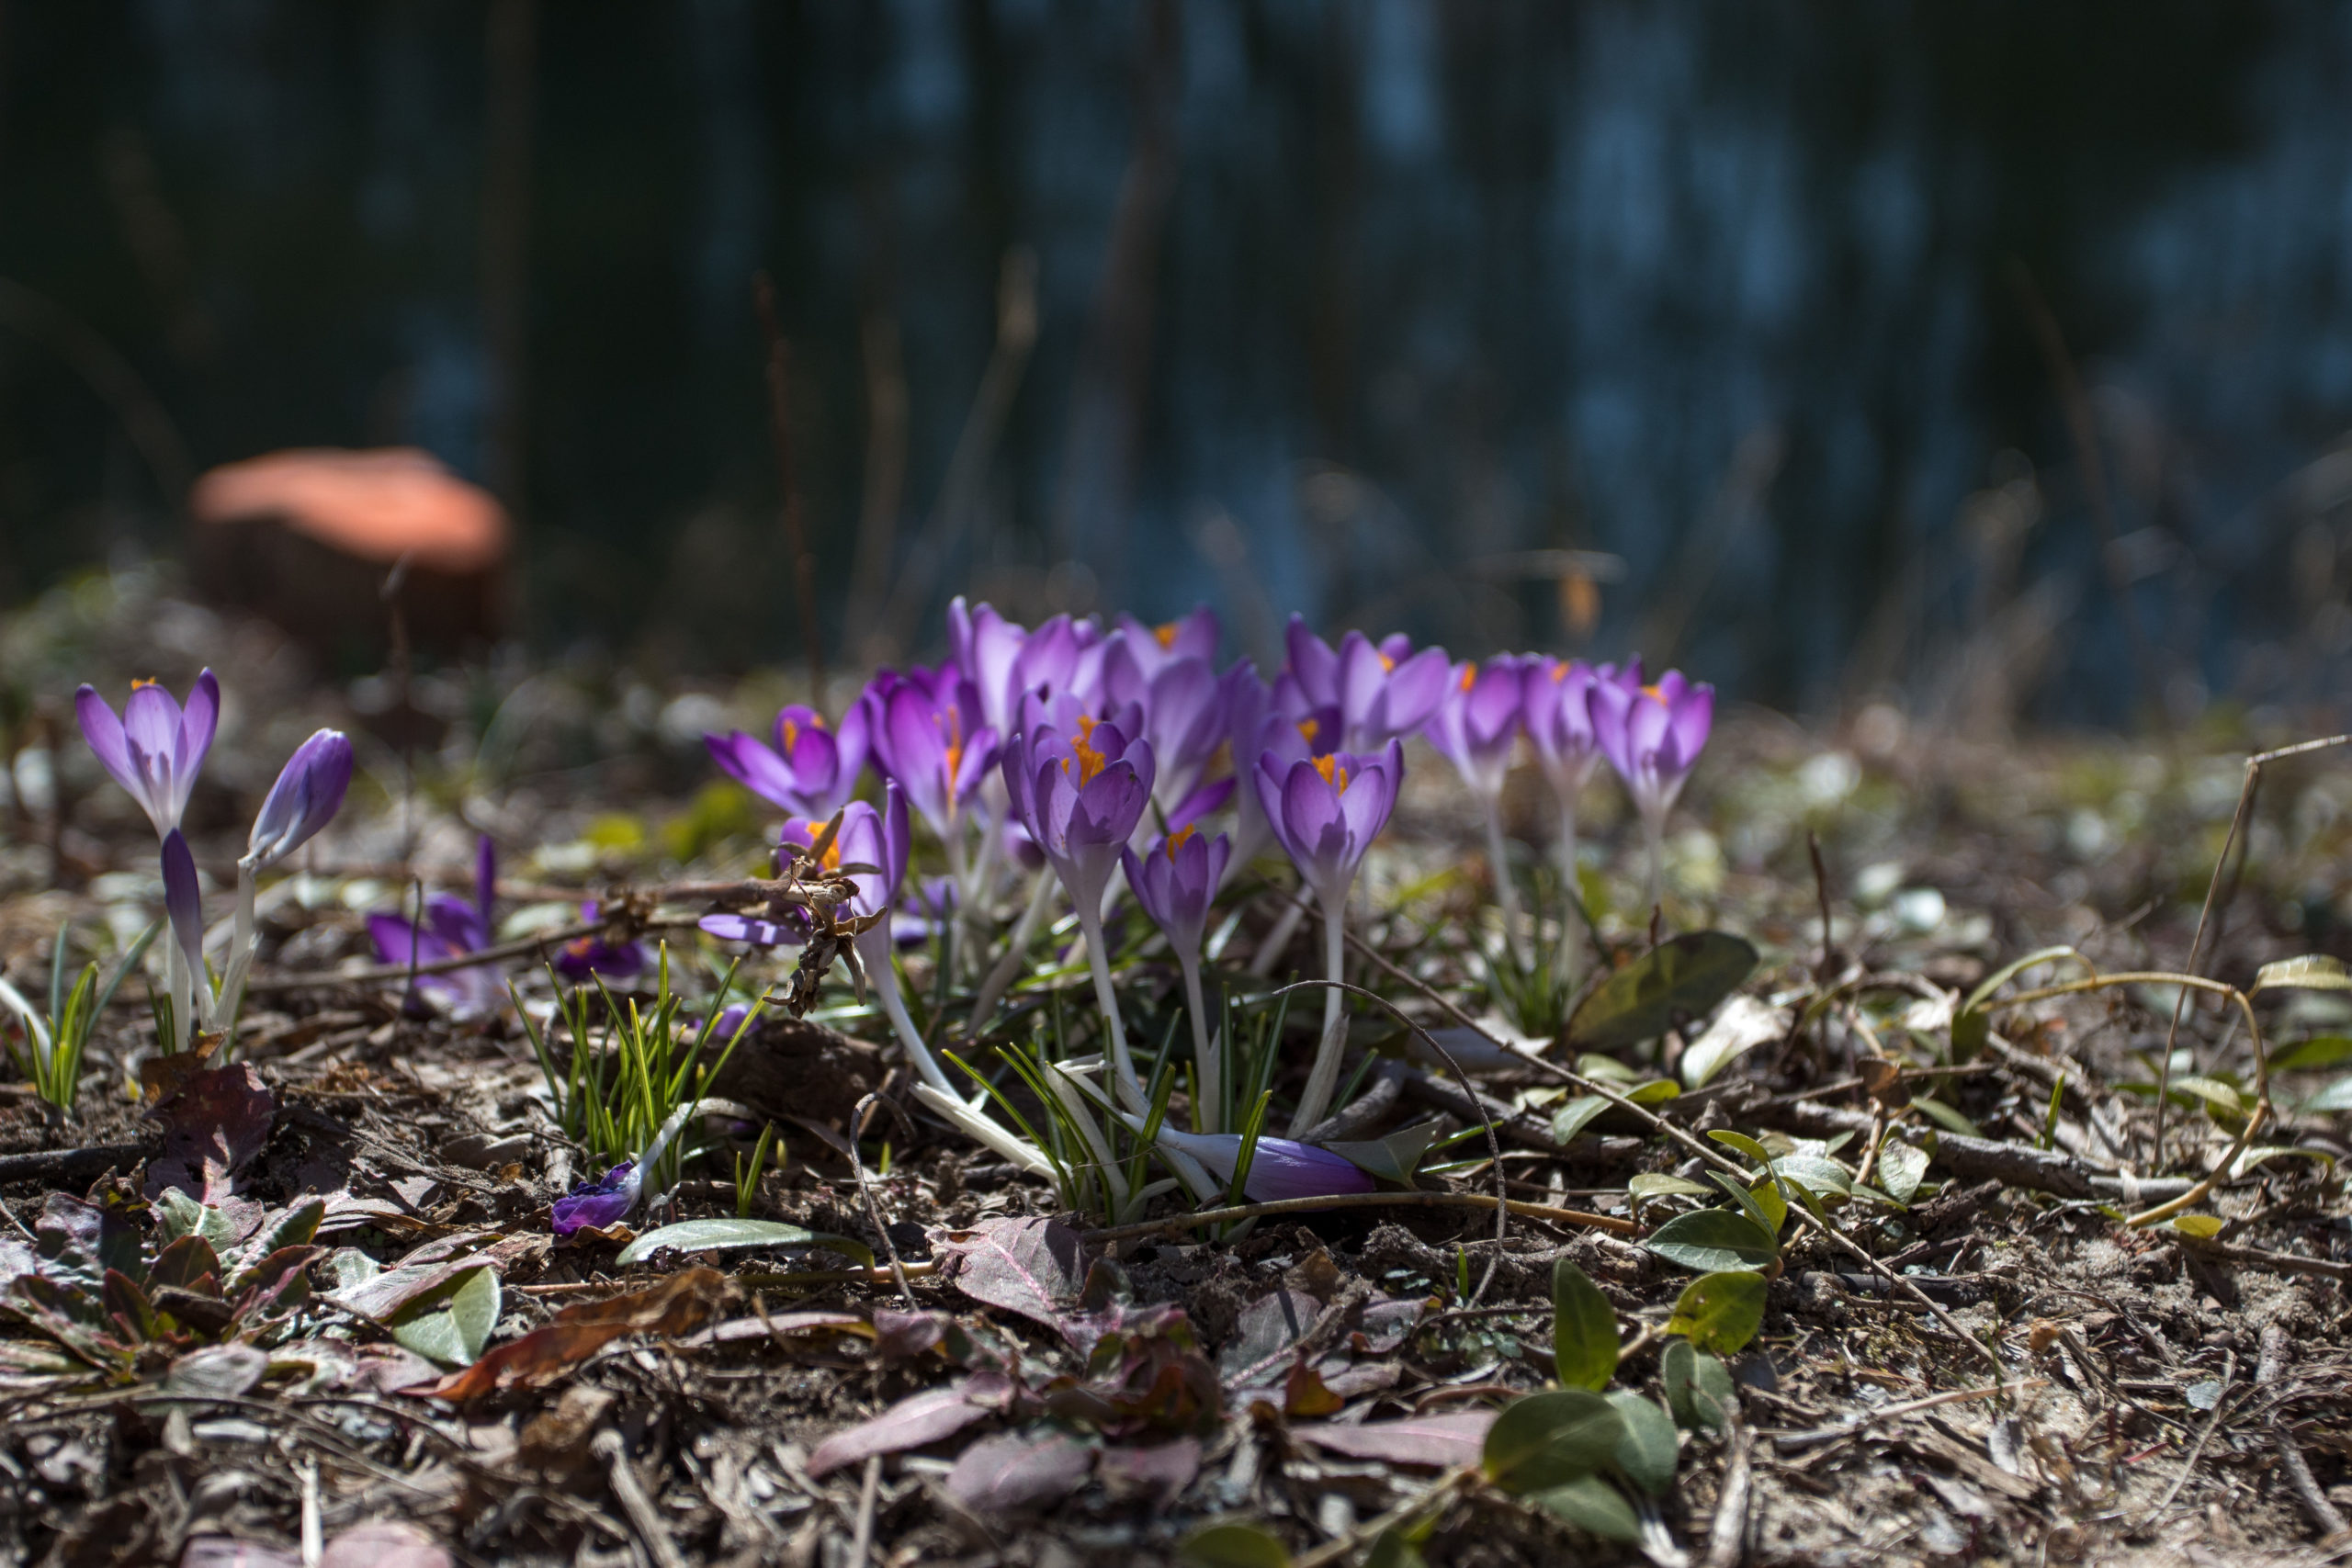 Spring is in the air and flowers are once again in bloom! Photo via multimedia editor/Alex Rossen